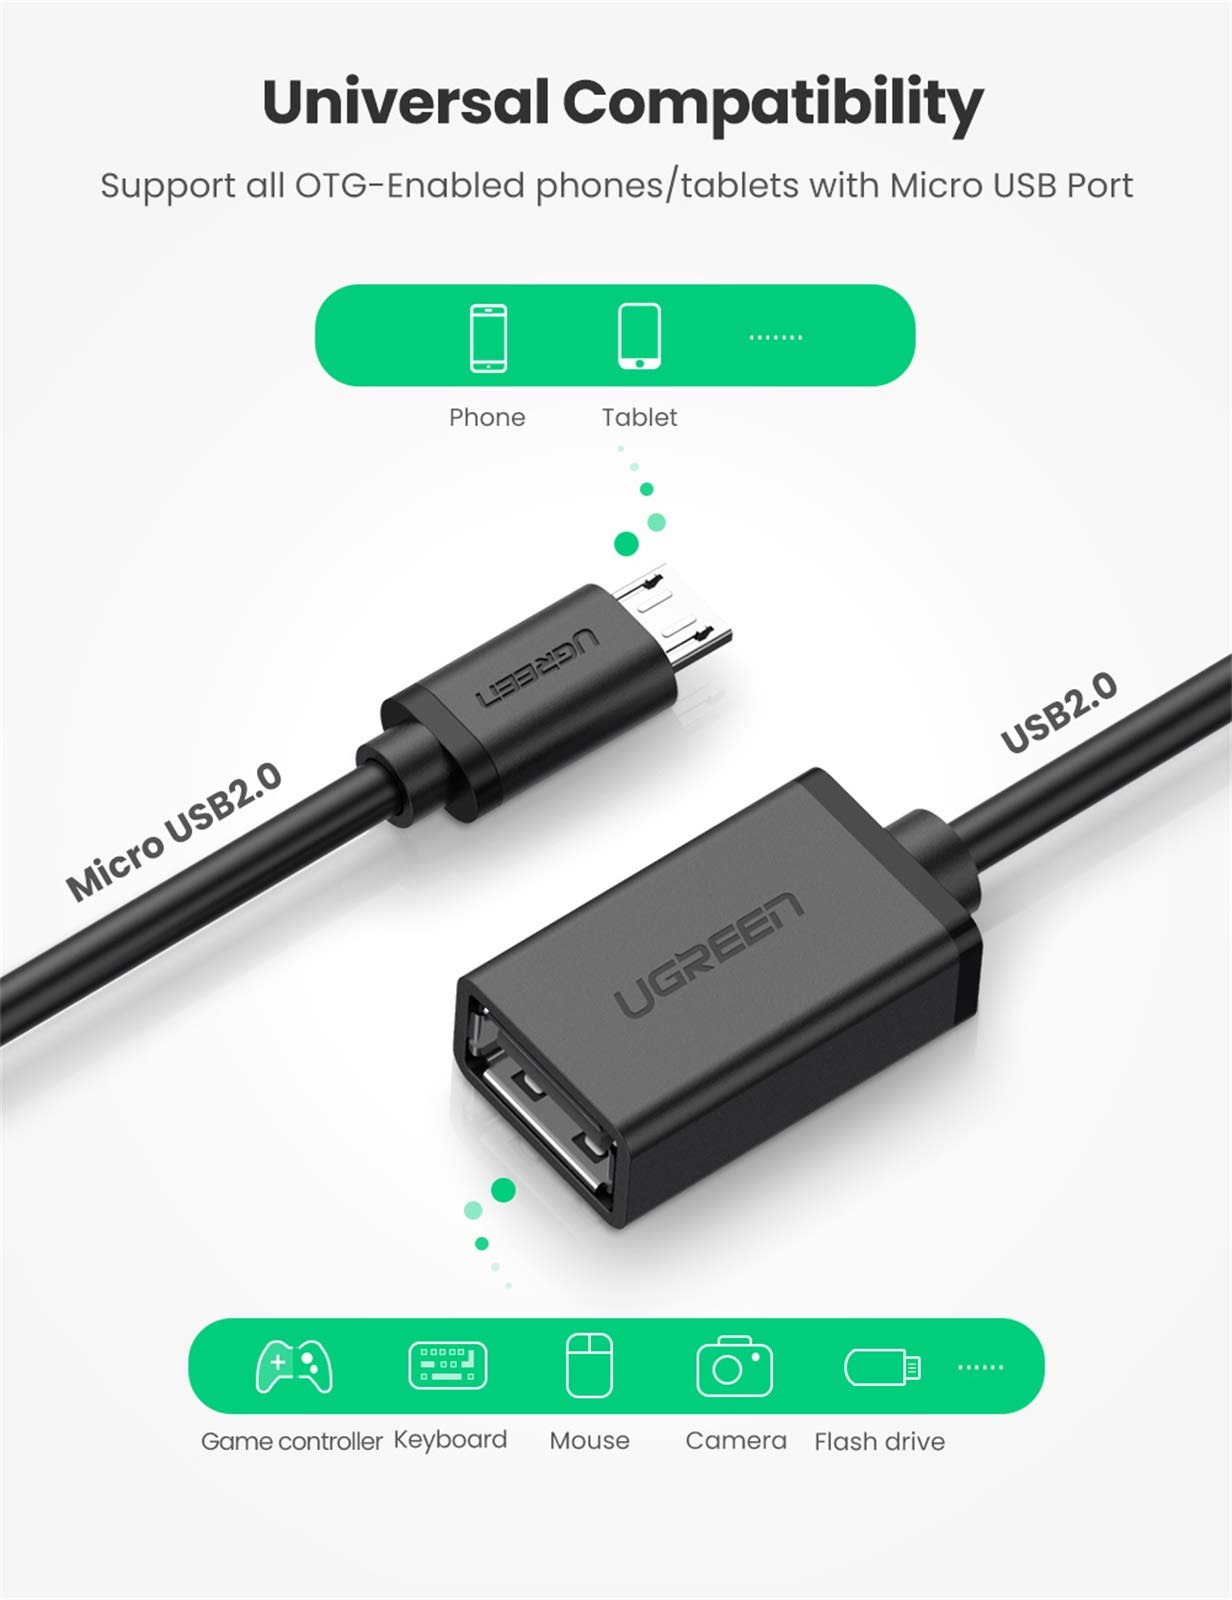 PRO OTG Cable Works for Huawei Ascend G6 Right Angle Cable Connects You to Any Compatible USB Device with MicroUSB